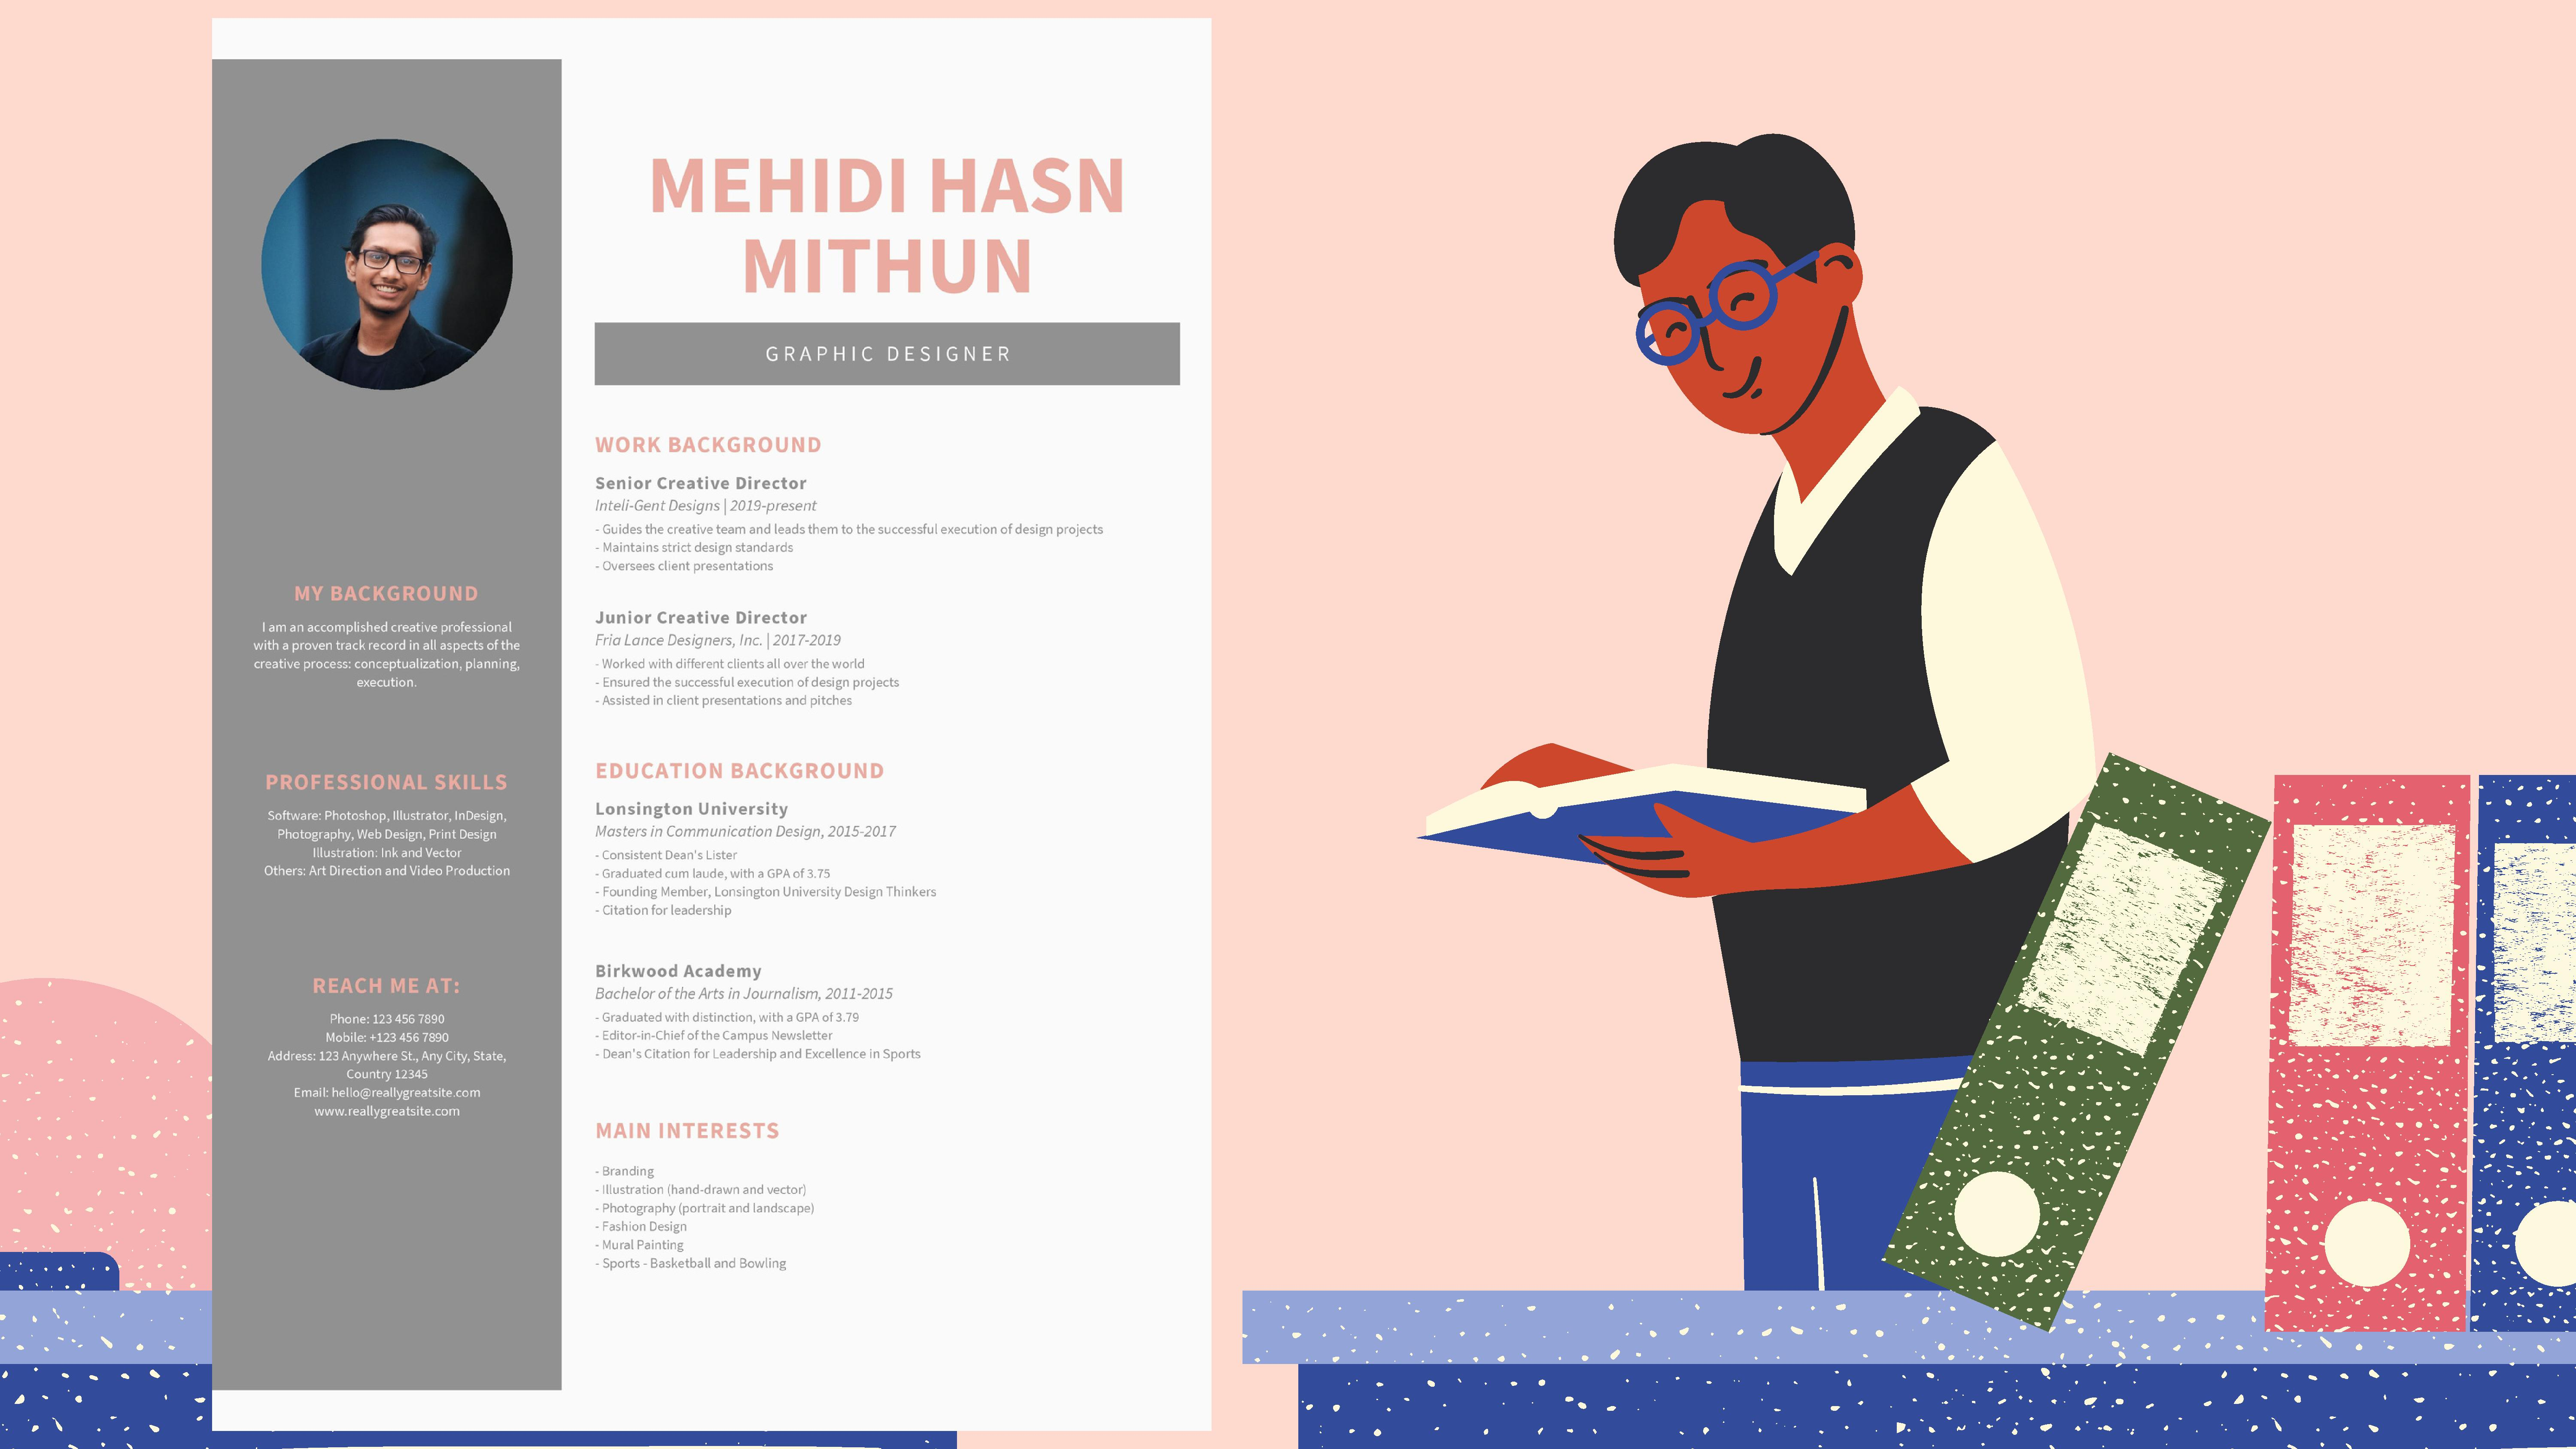 I will design a professional CV and resume in 1 day